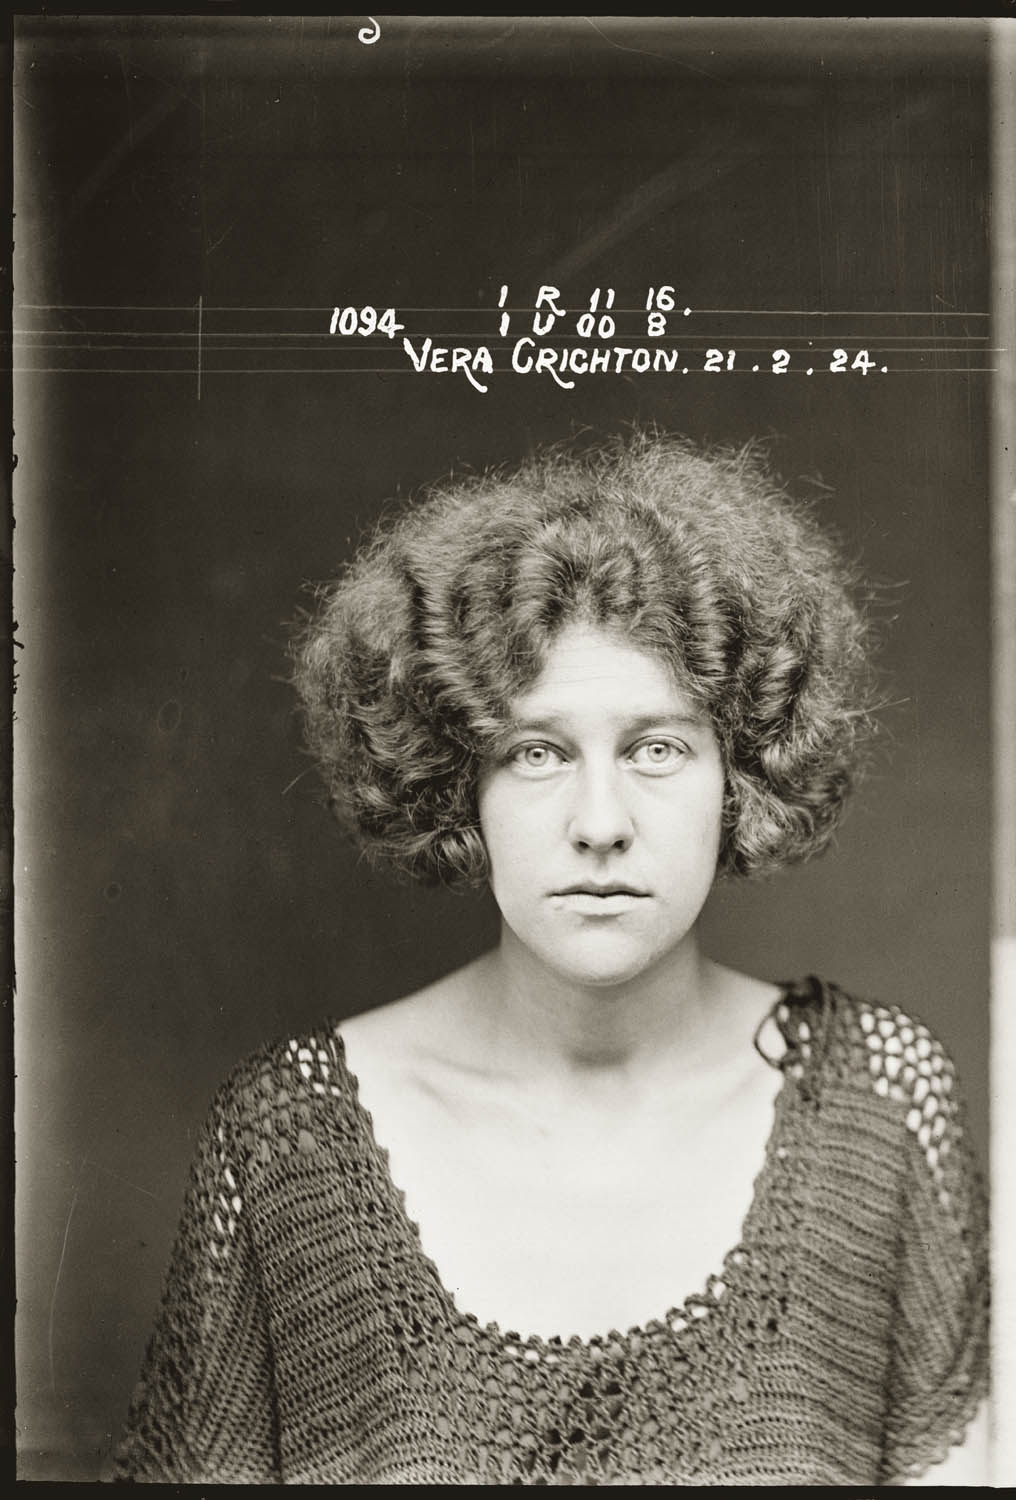 Mug shot of Vera Crichton, taken 21 February 1924, probably Central Police Station, Sydney.